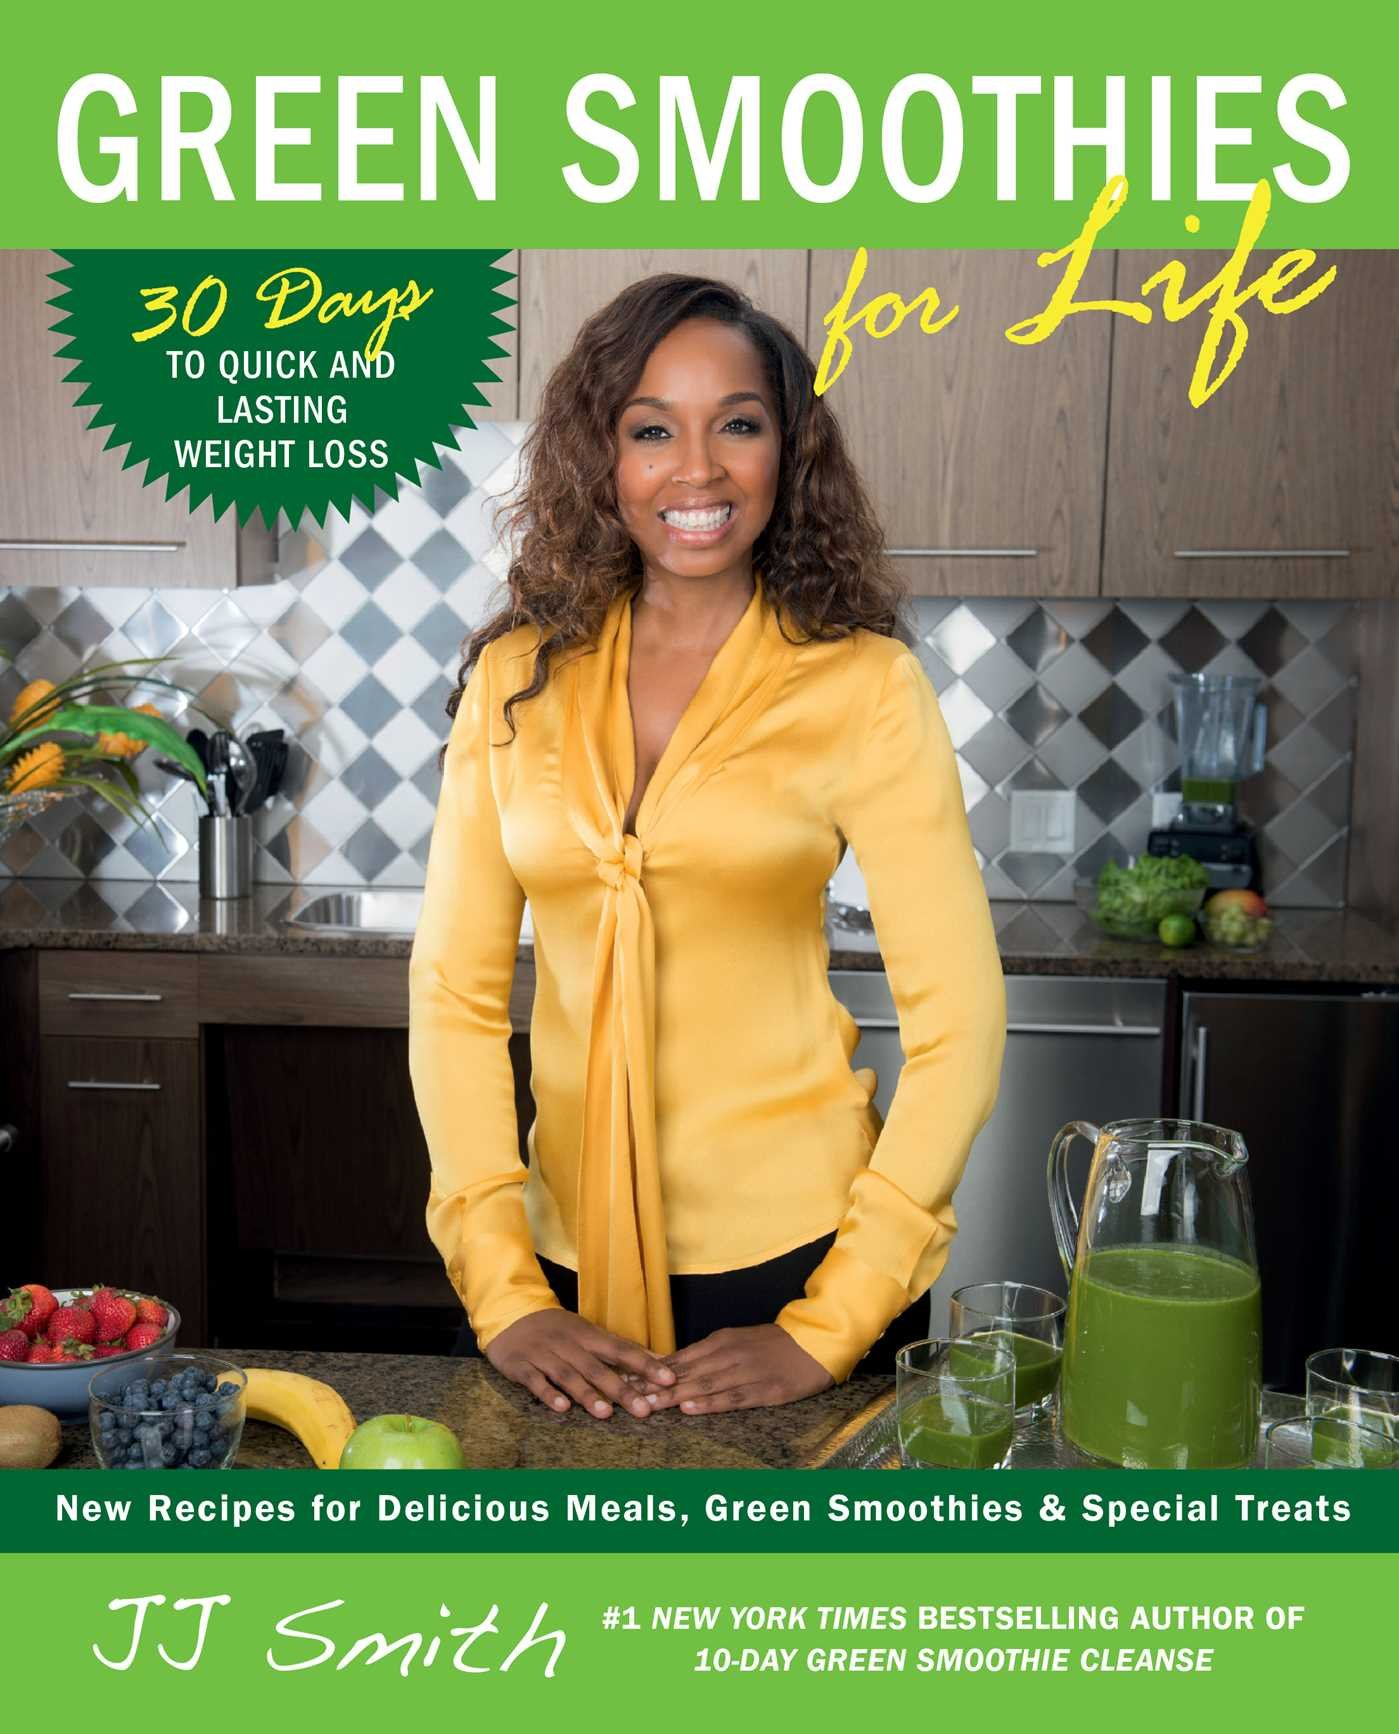 Buy Green Smoothies For Life Now!